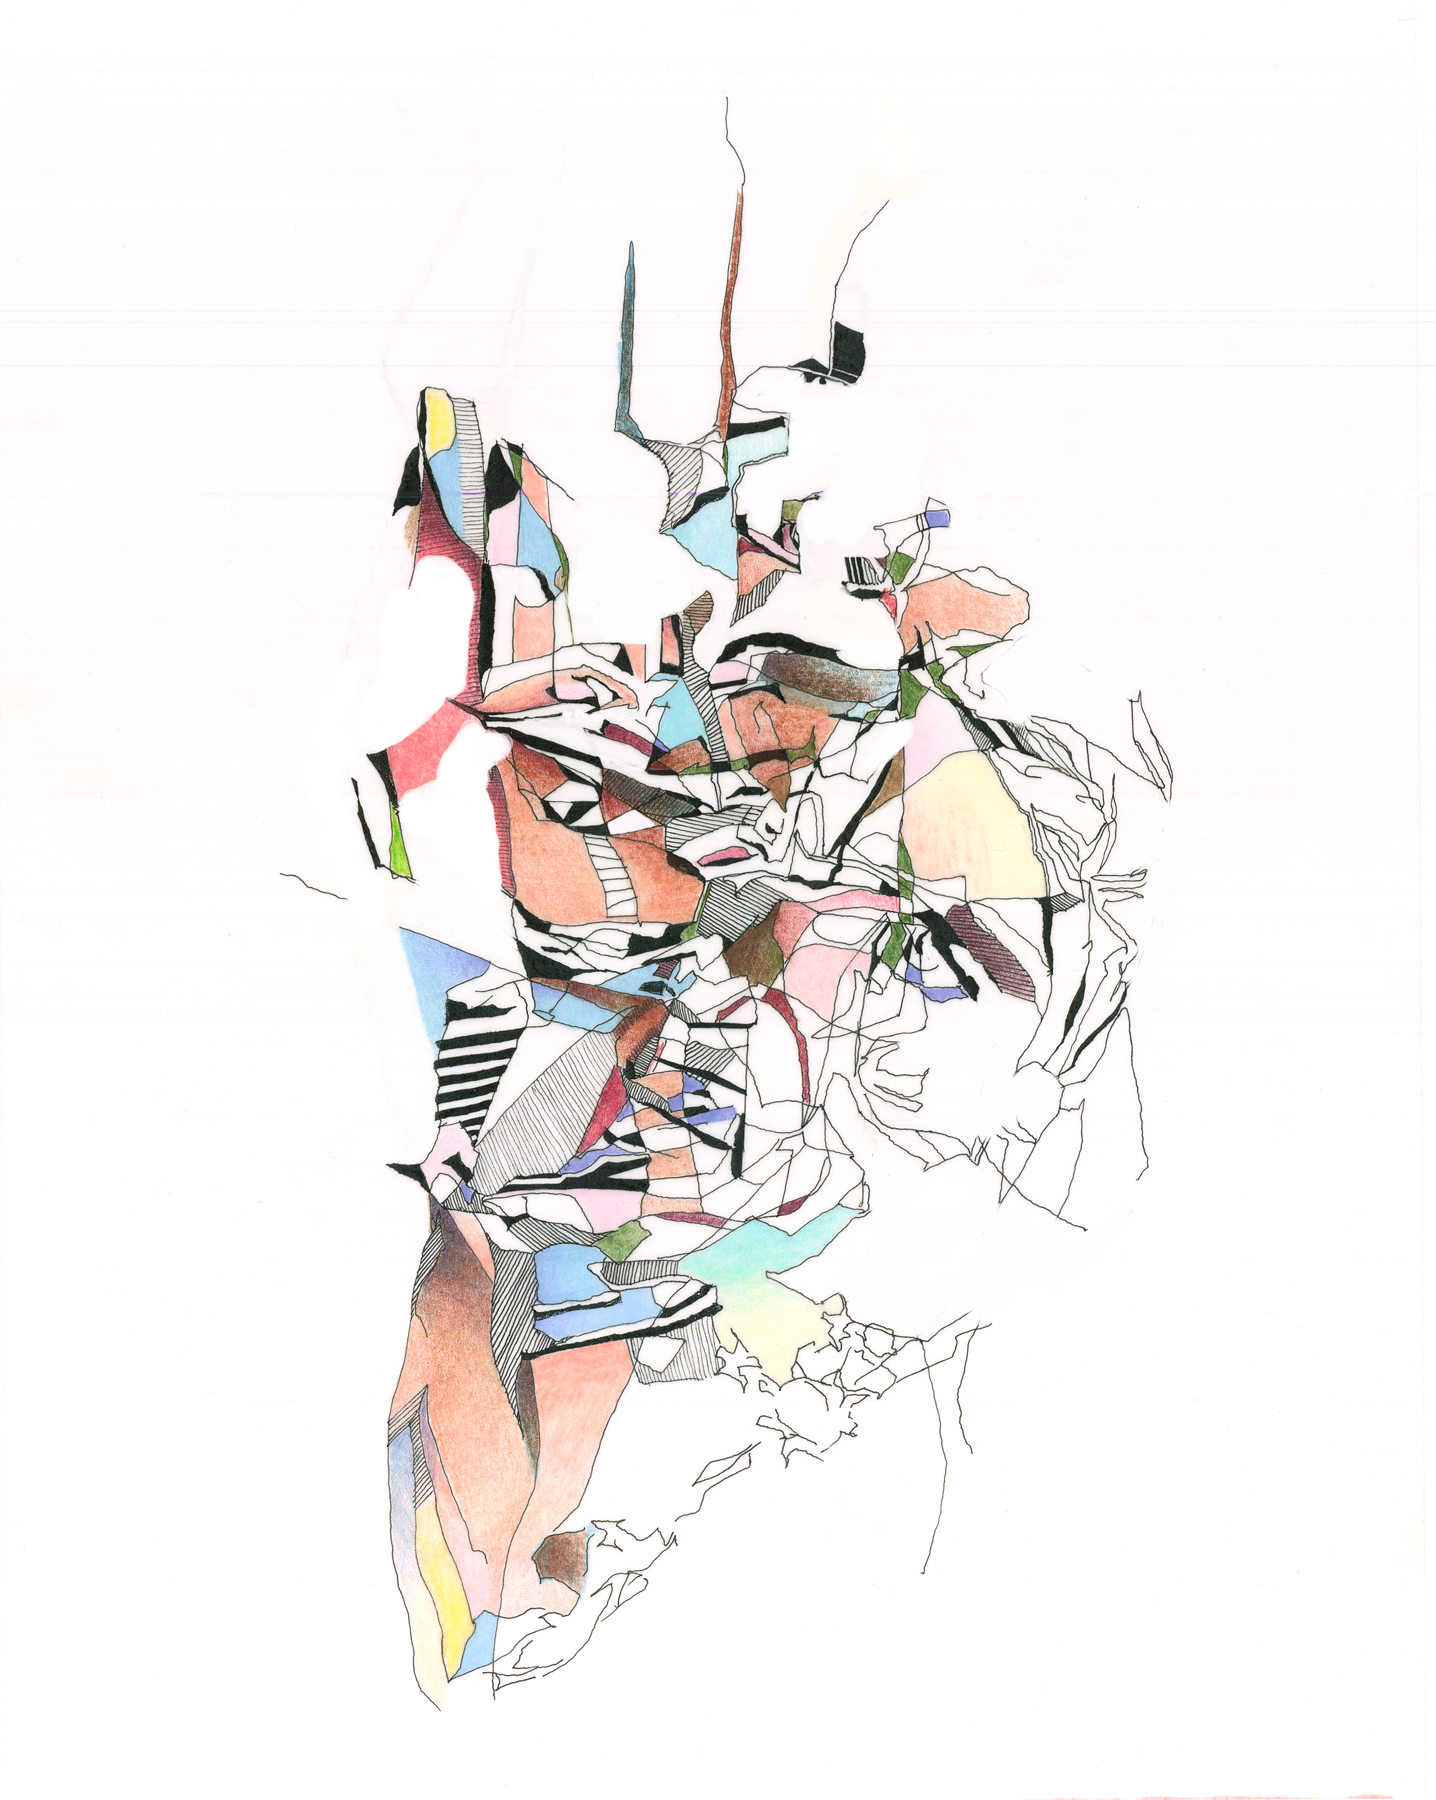 Mediated001A|1800.png